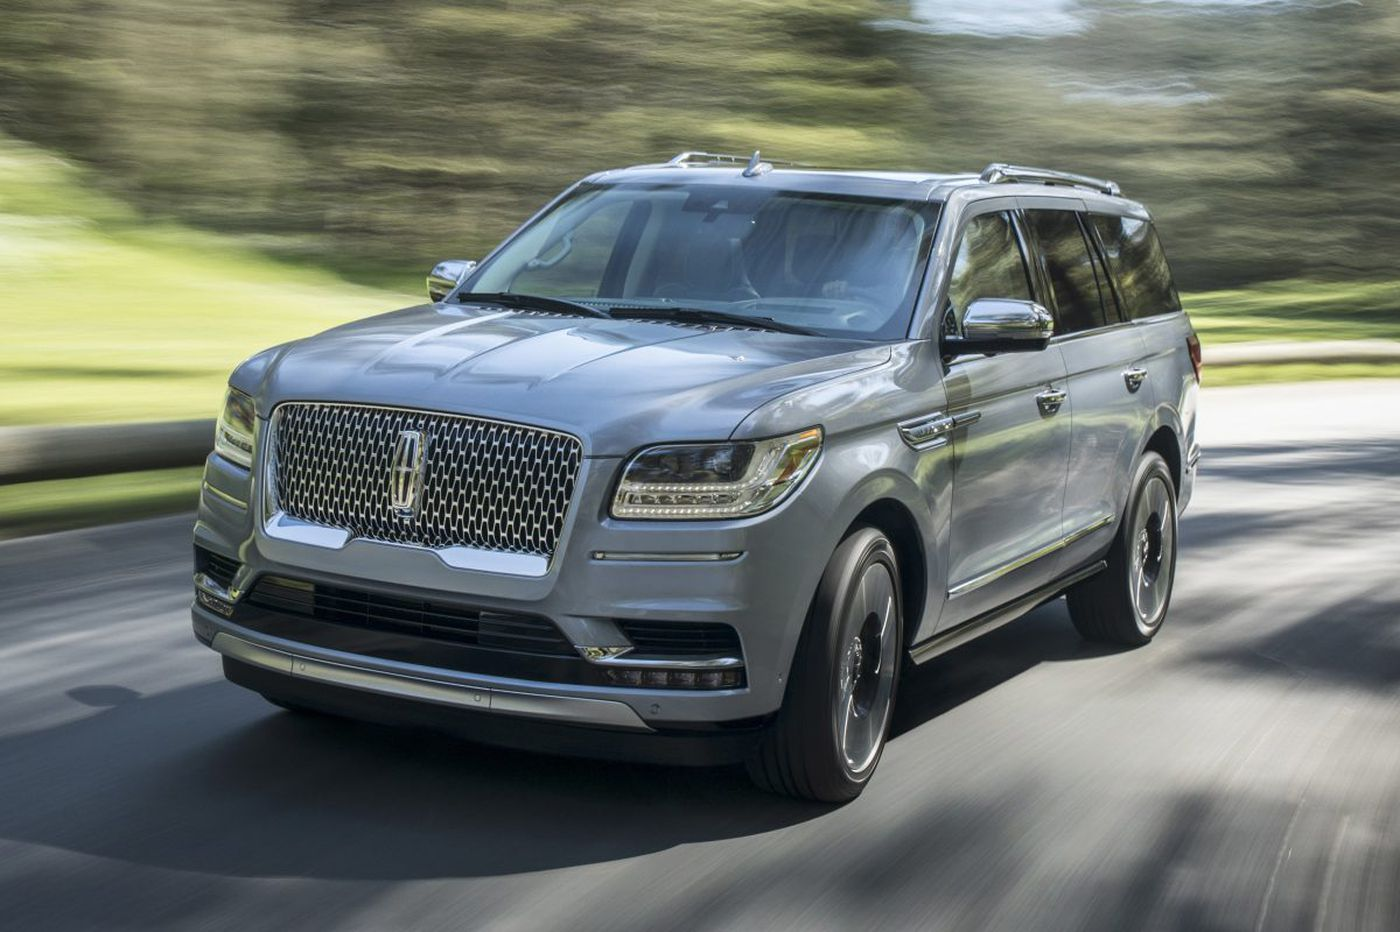 $92,000 Navigator delivery delayed - 'I want my toy!' buyer laments